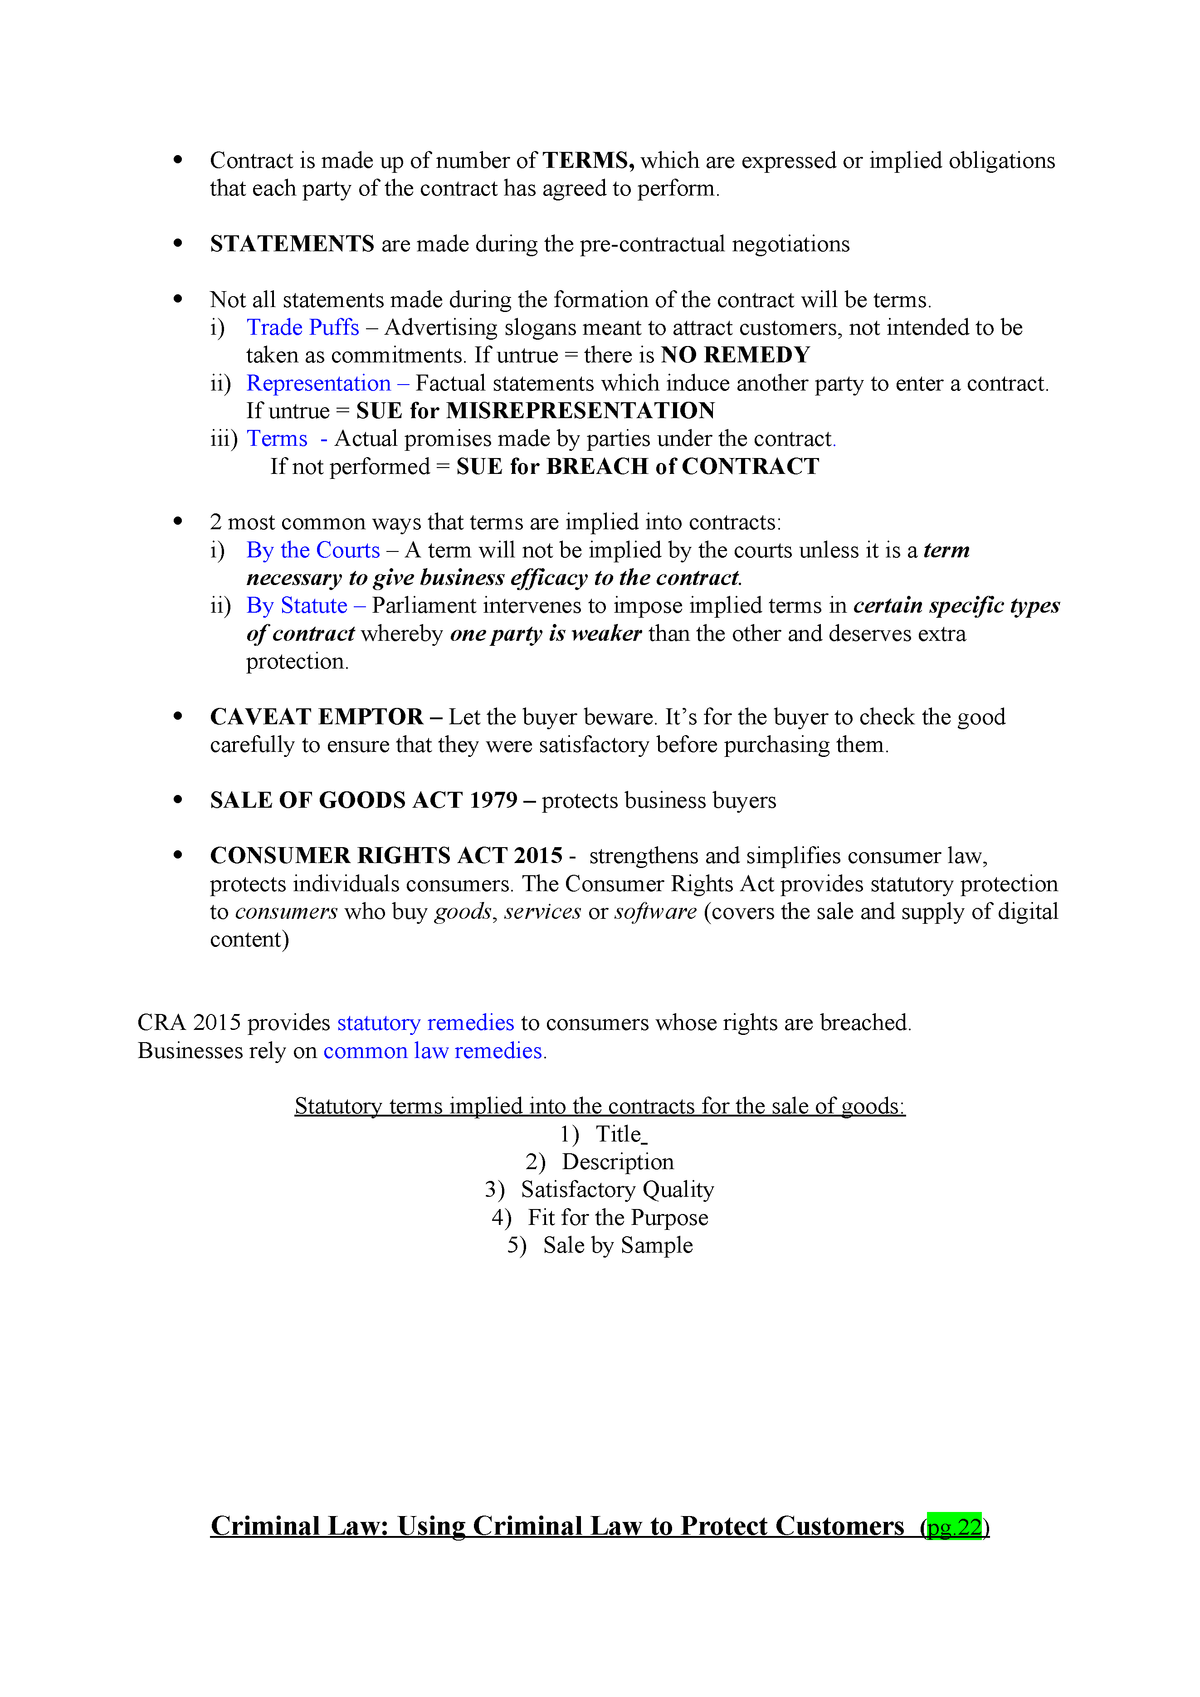 Test Notes for Business Law 2 - IB2370 - Warwick - StuDocu